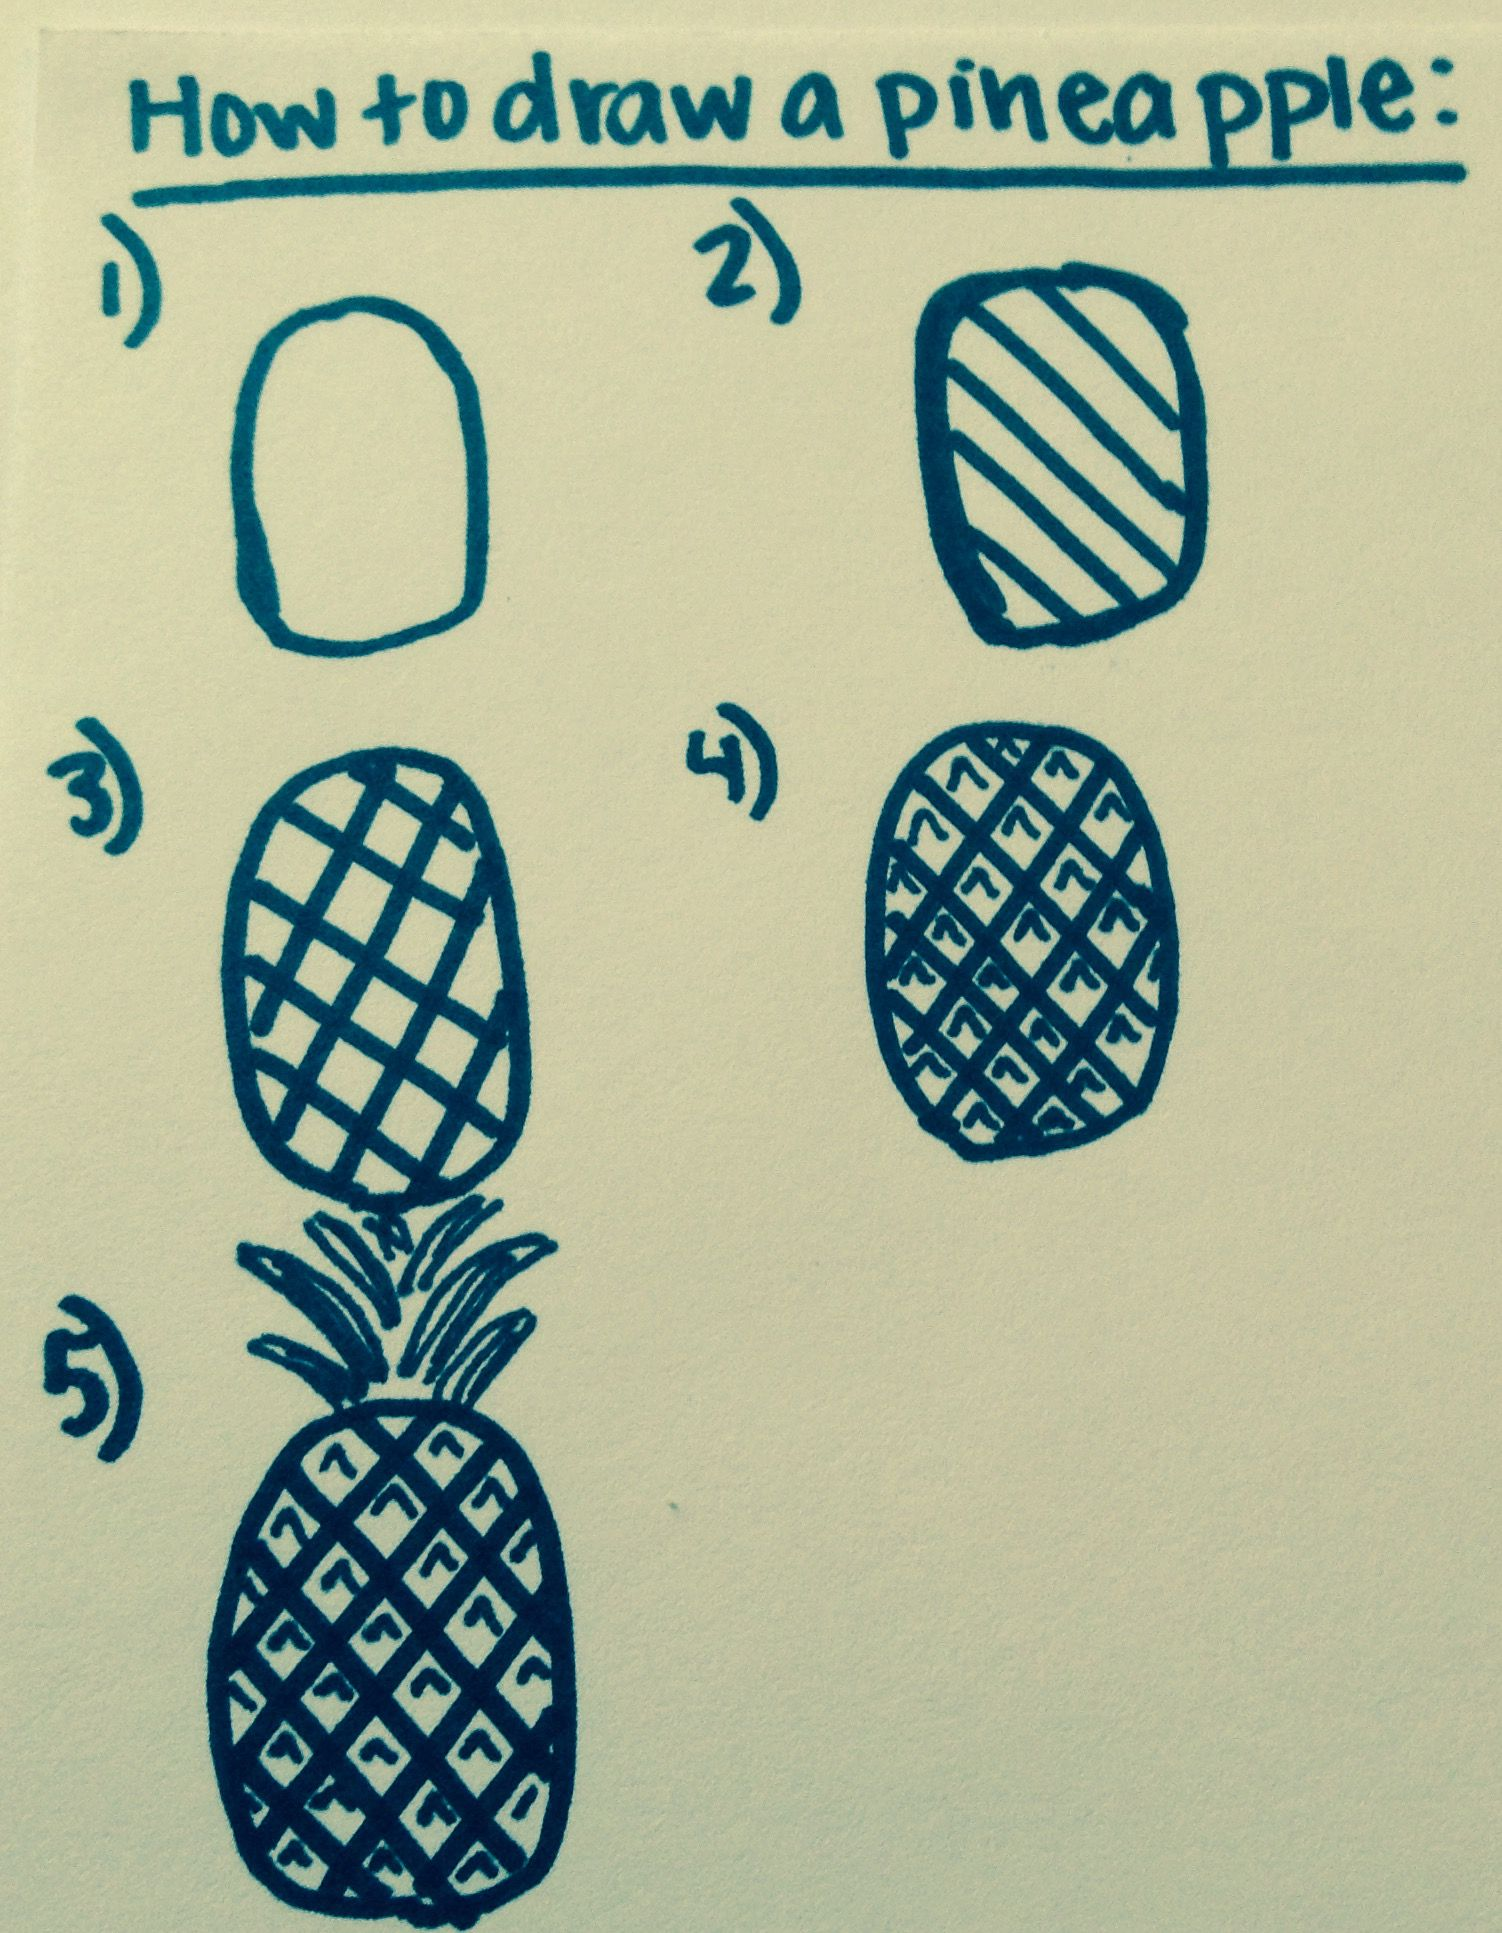 5 Easy Steps To Draw A Pineapple In 2019 Easy Chalk